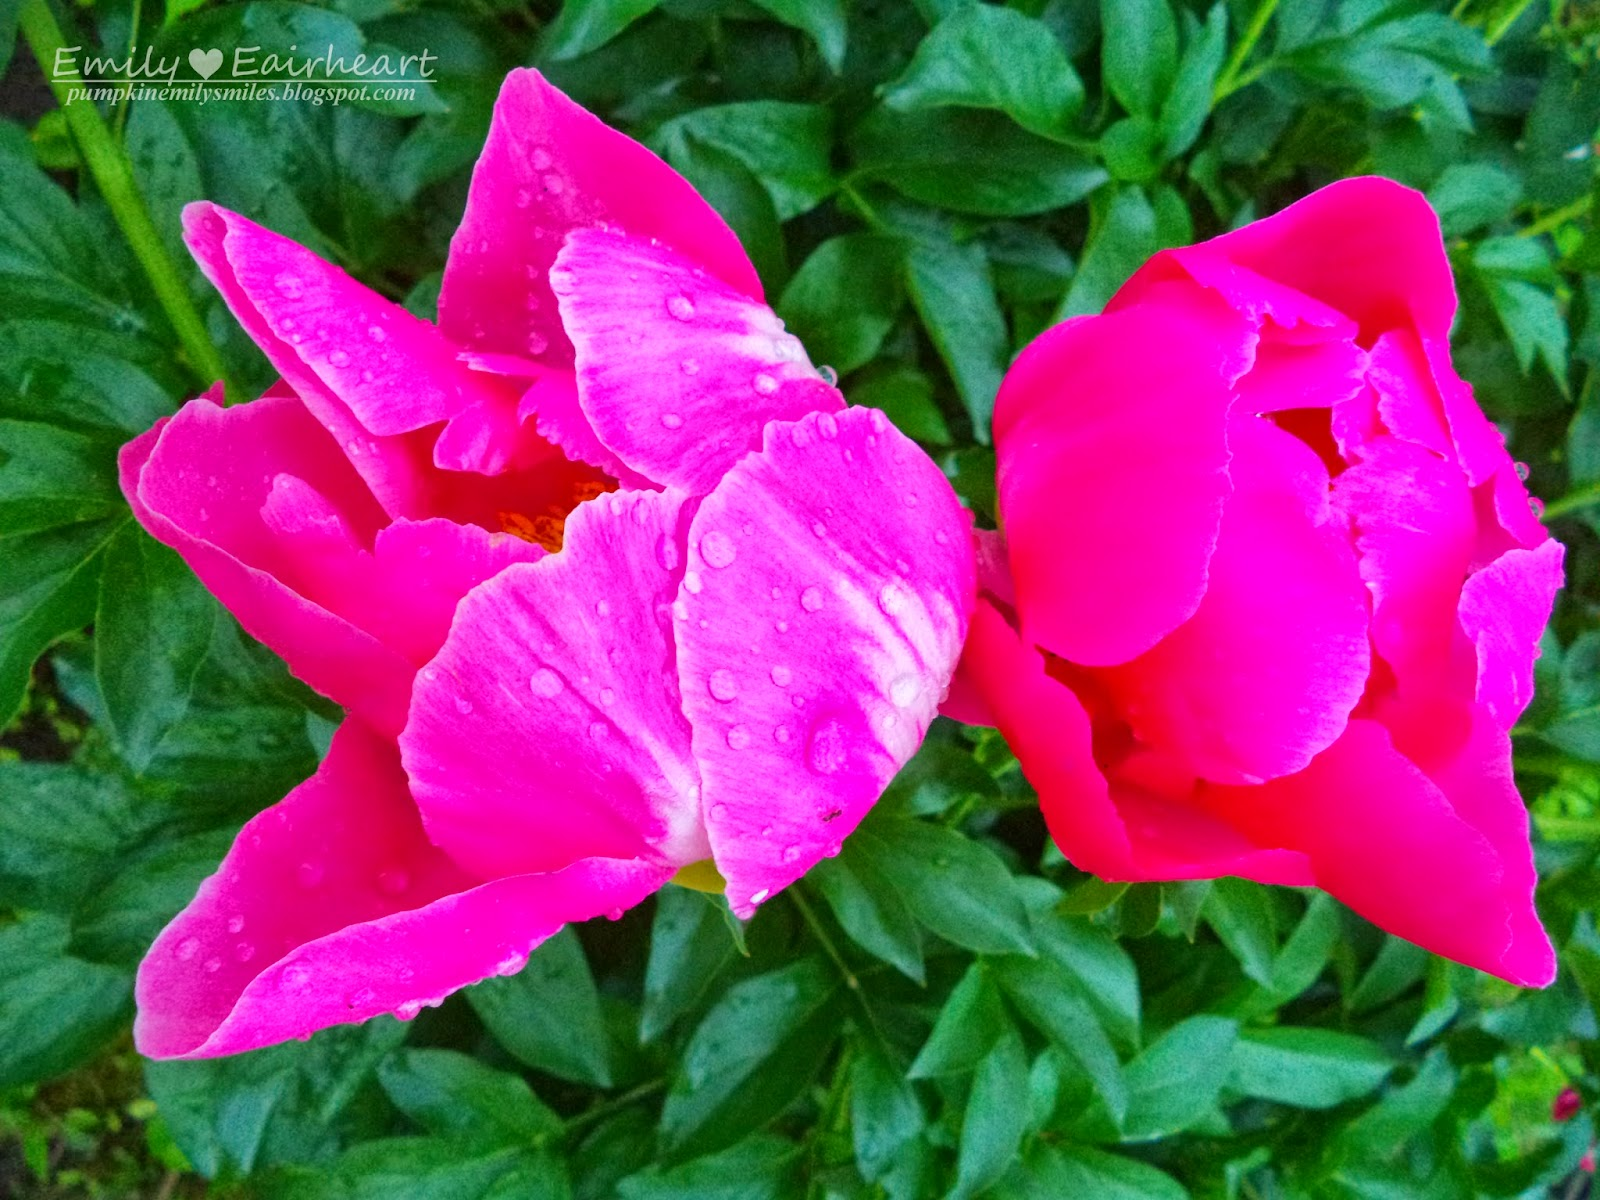 Two hot pink Peonies. The flower on the left has water droplets on the petals.